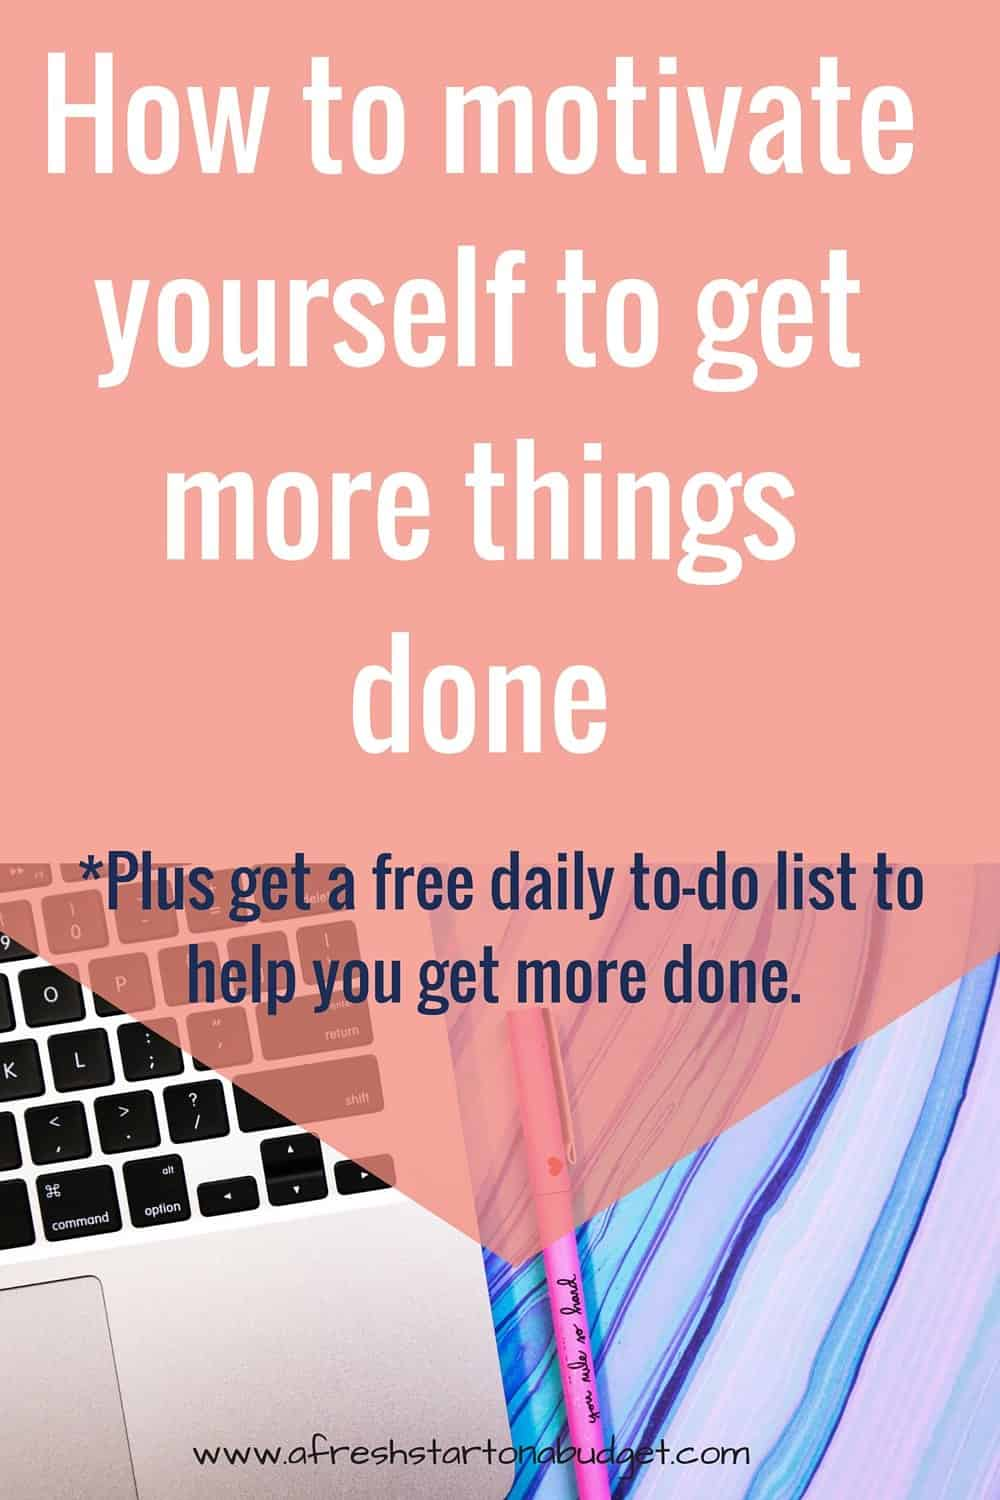 How to motivate yourself to get more things done. Plus click through to get your free daily to-do list, which is how I motivate myself to do more.